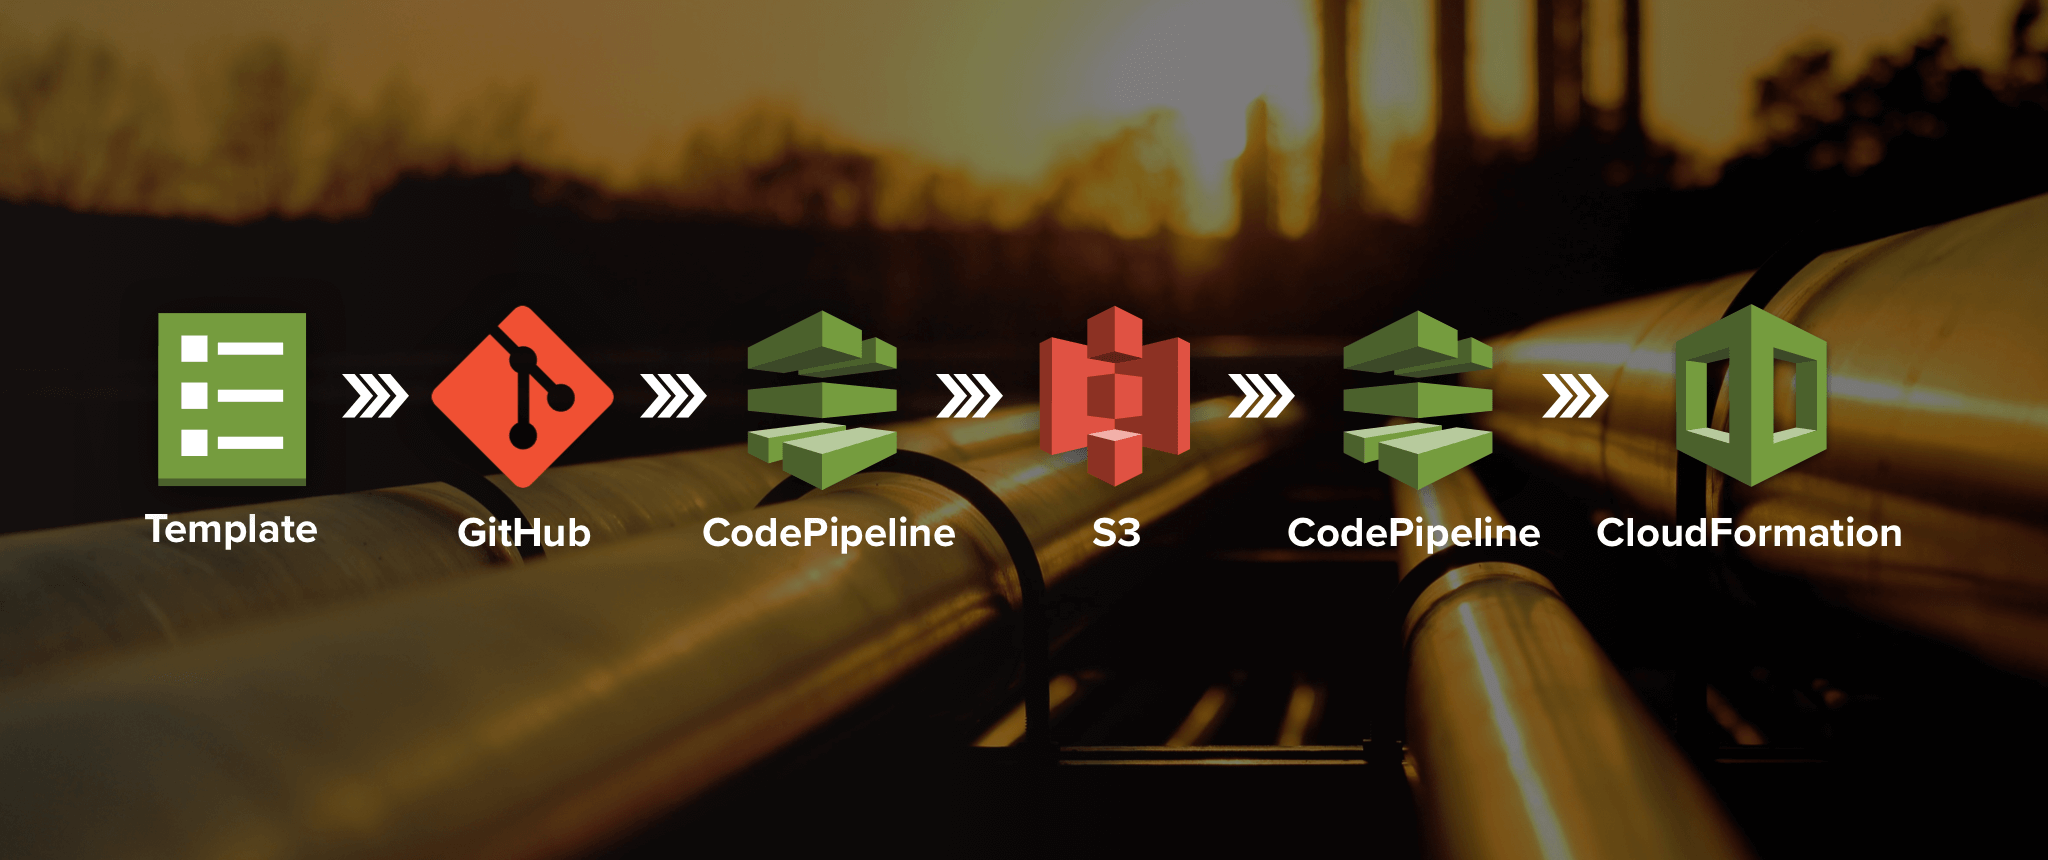 Self Enforcing, Self Documenting, Infrastructure Change Management with CodePipeline and CloudFormation